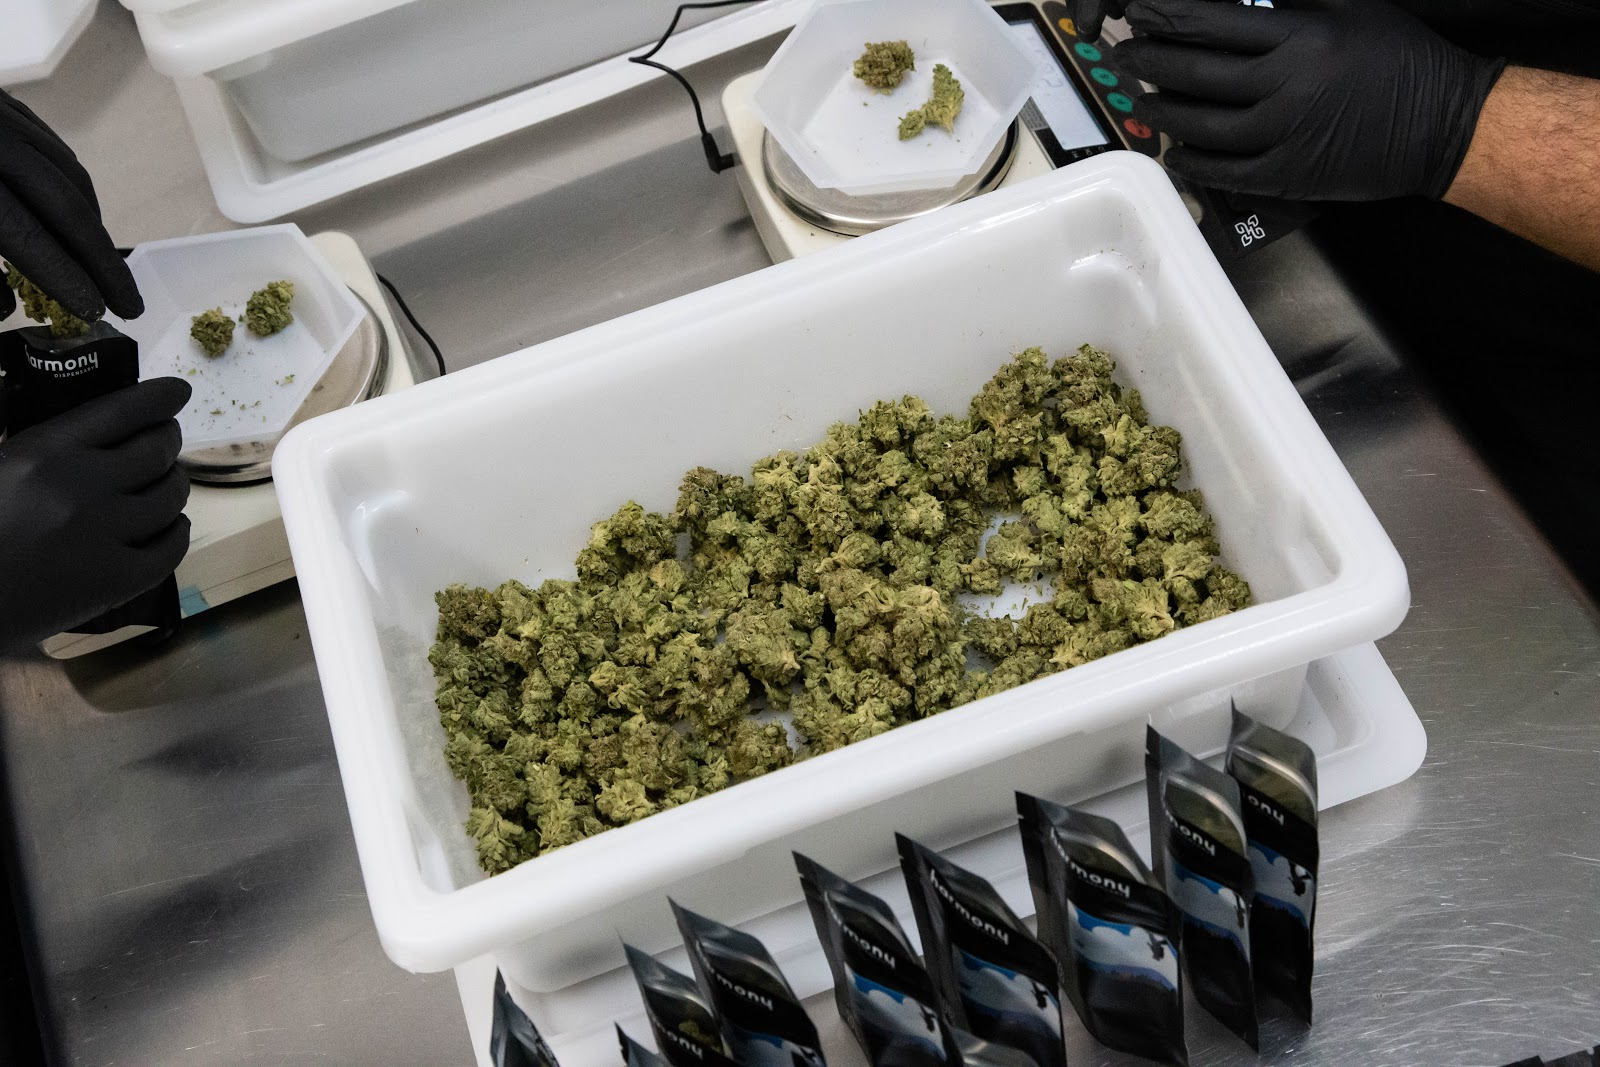 2019_02_06_Packaging_BlackBags_Cultivation_Flowering_Harmony_Dispensary_Cannabis_Marijuana_02.jpg